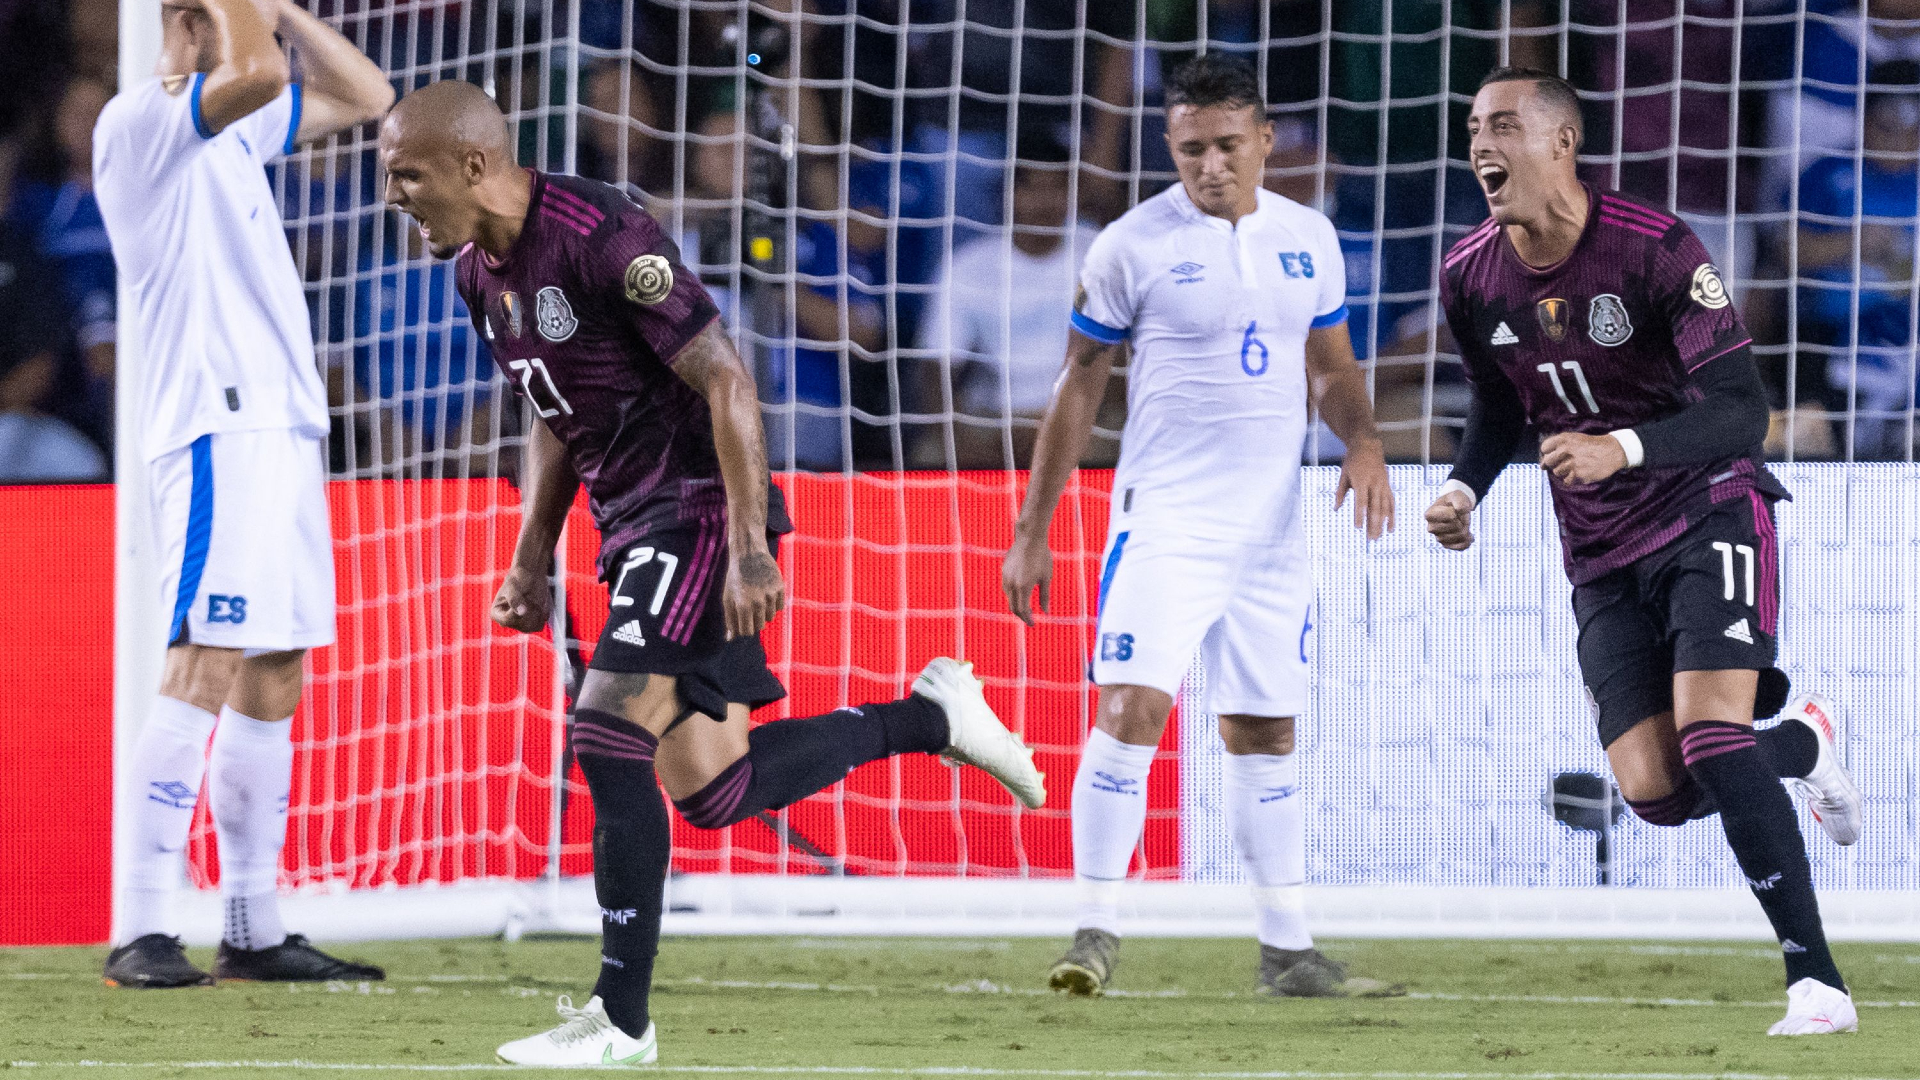 Mexico gets surprise Chaka goal in tight Gold Cup win over El Salvador